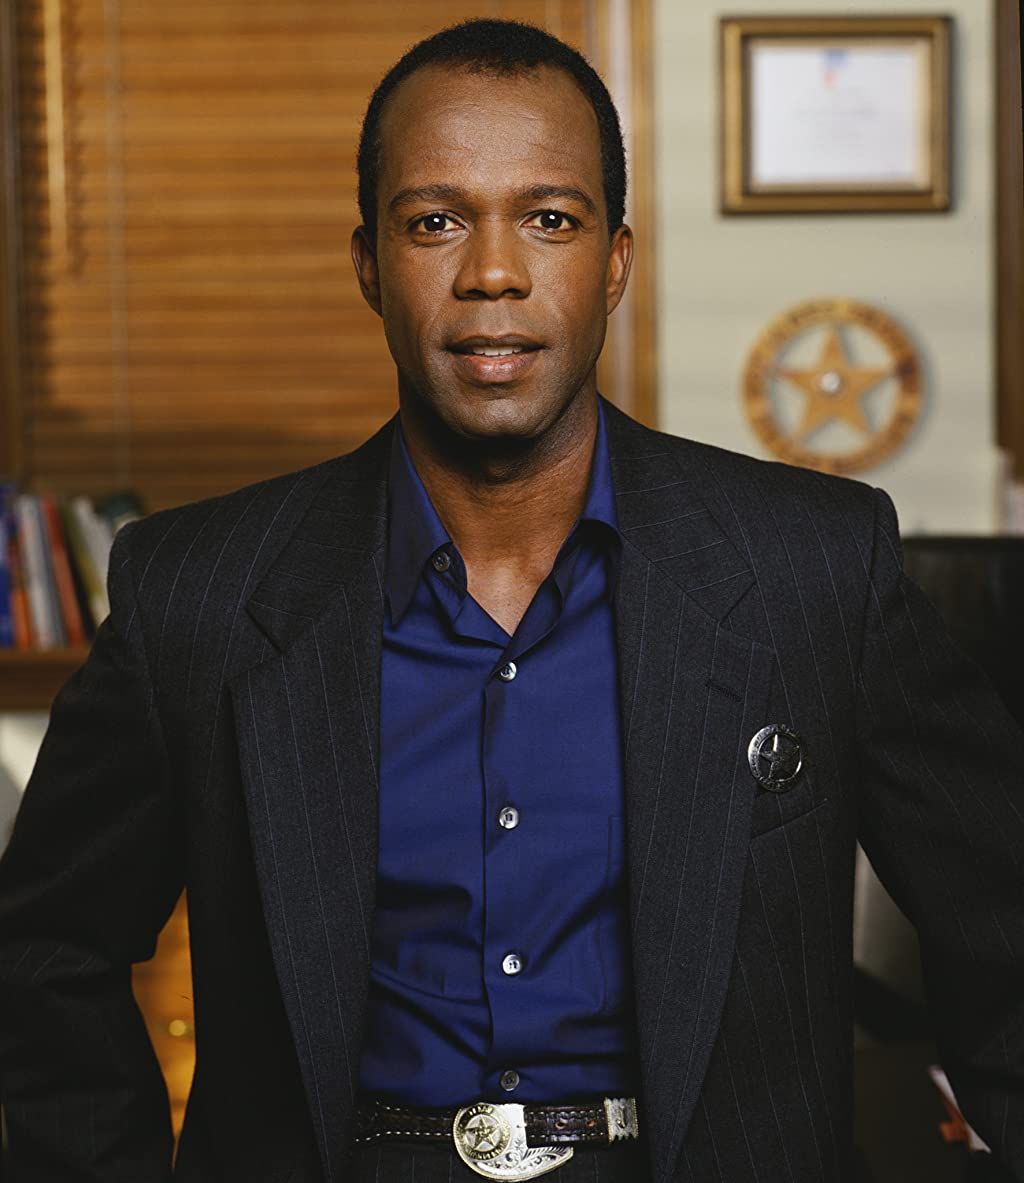 The American actor/college professor/author Clarence Gilyard